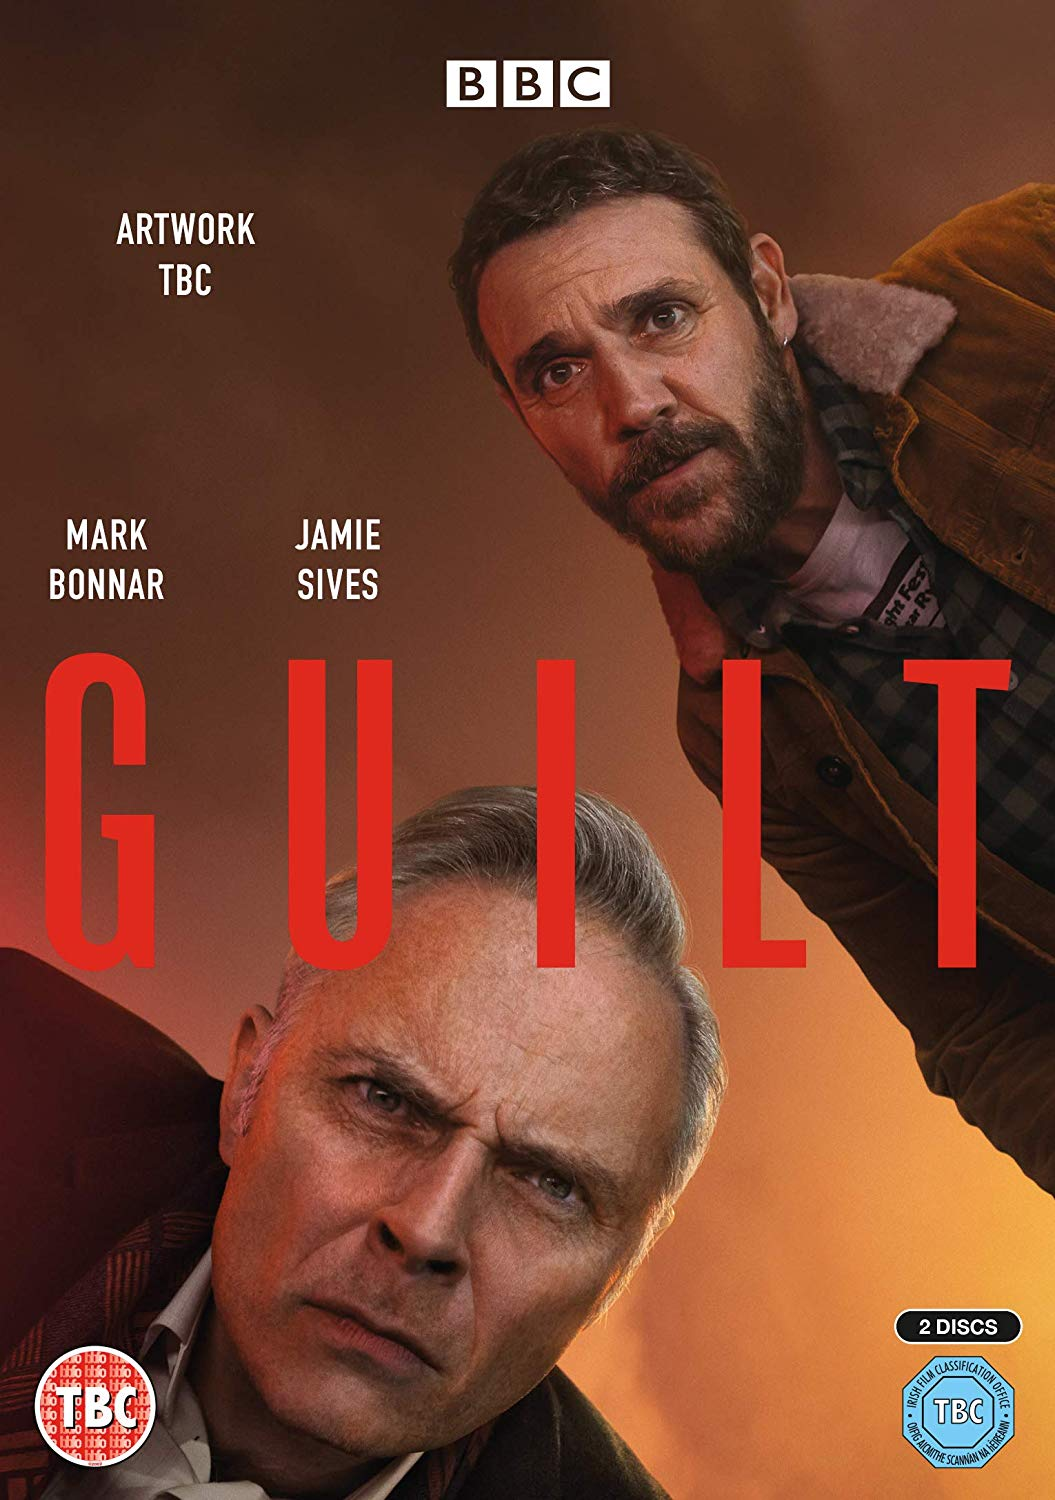 GUILT [DVD] OUT 22.11.19 PRE-ORDER NOW